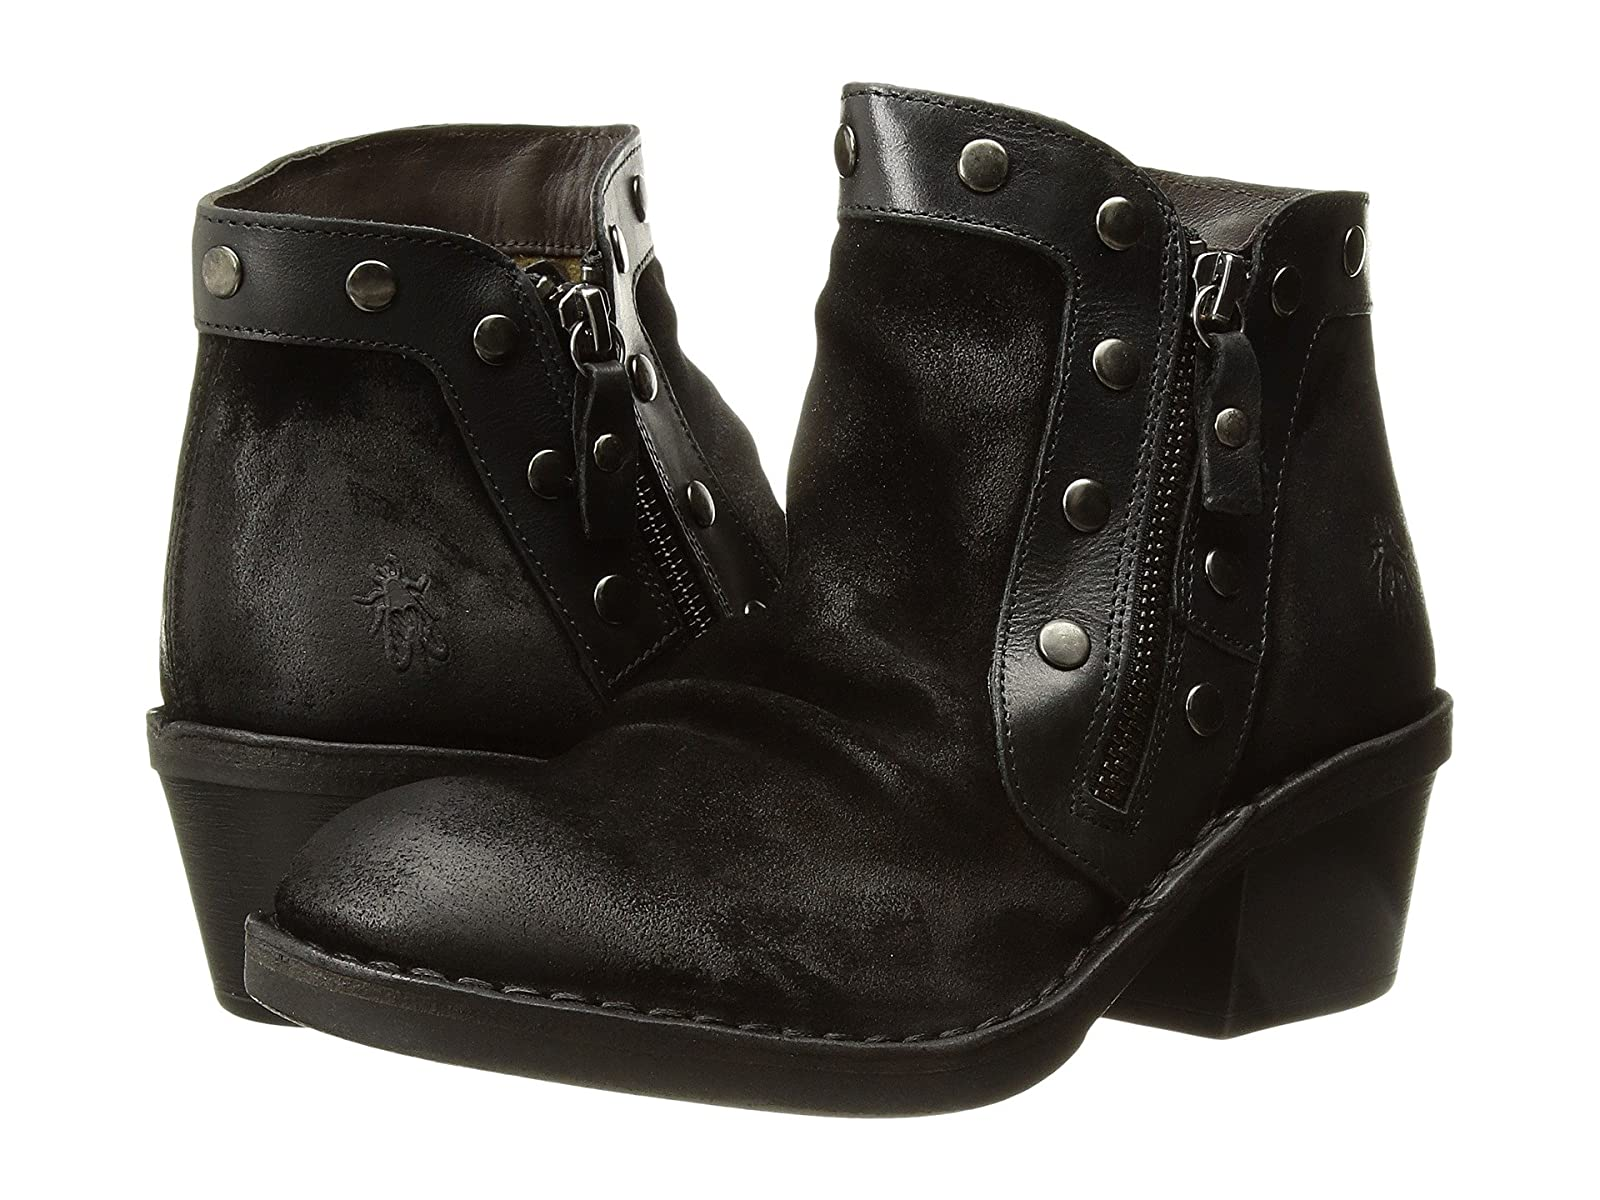 FLY LONDON Duke941FlyCheap and distinctive eye-catching shoes